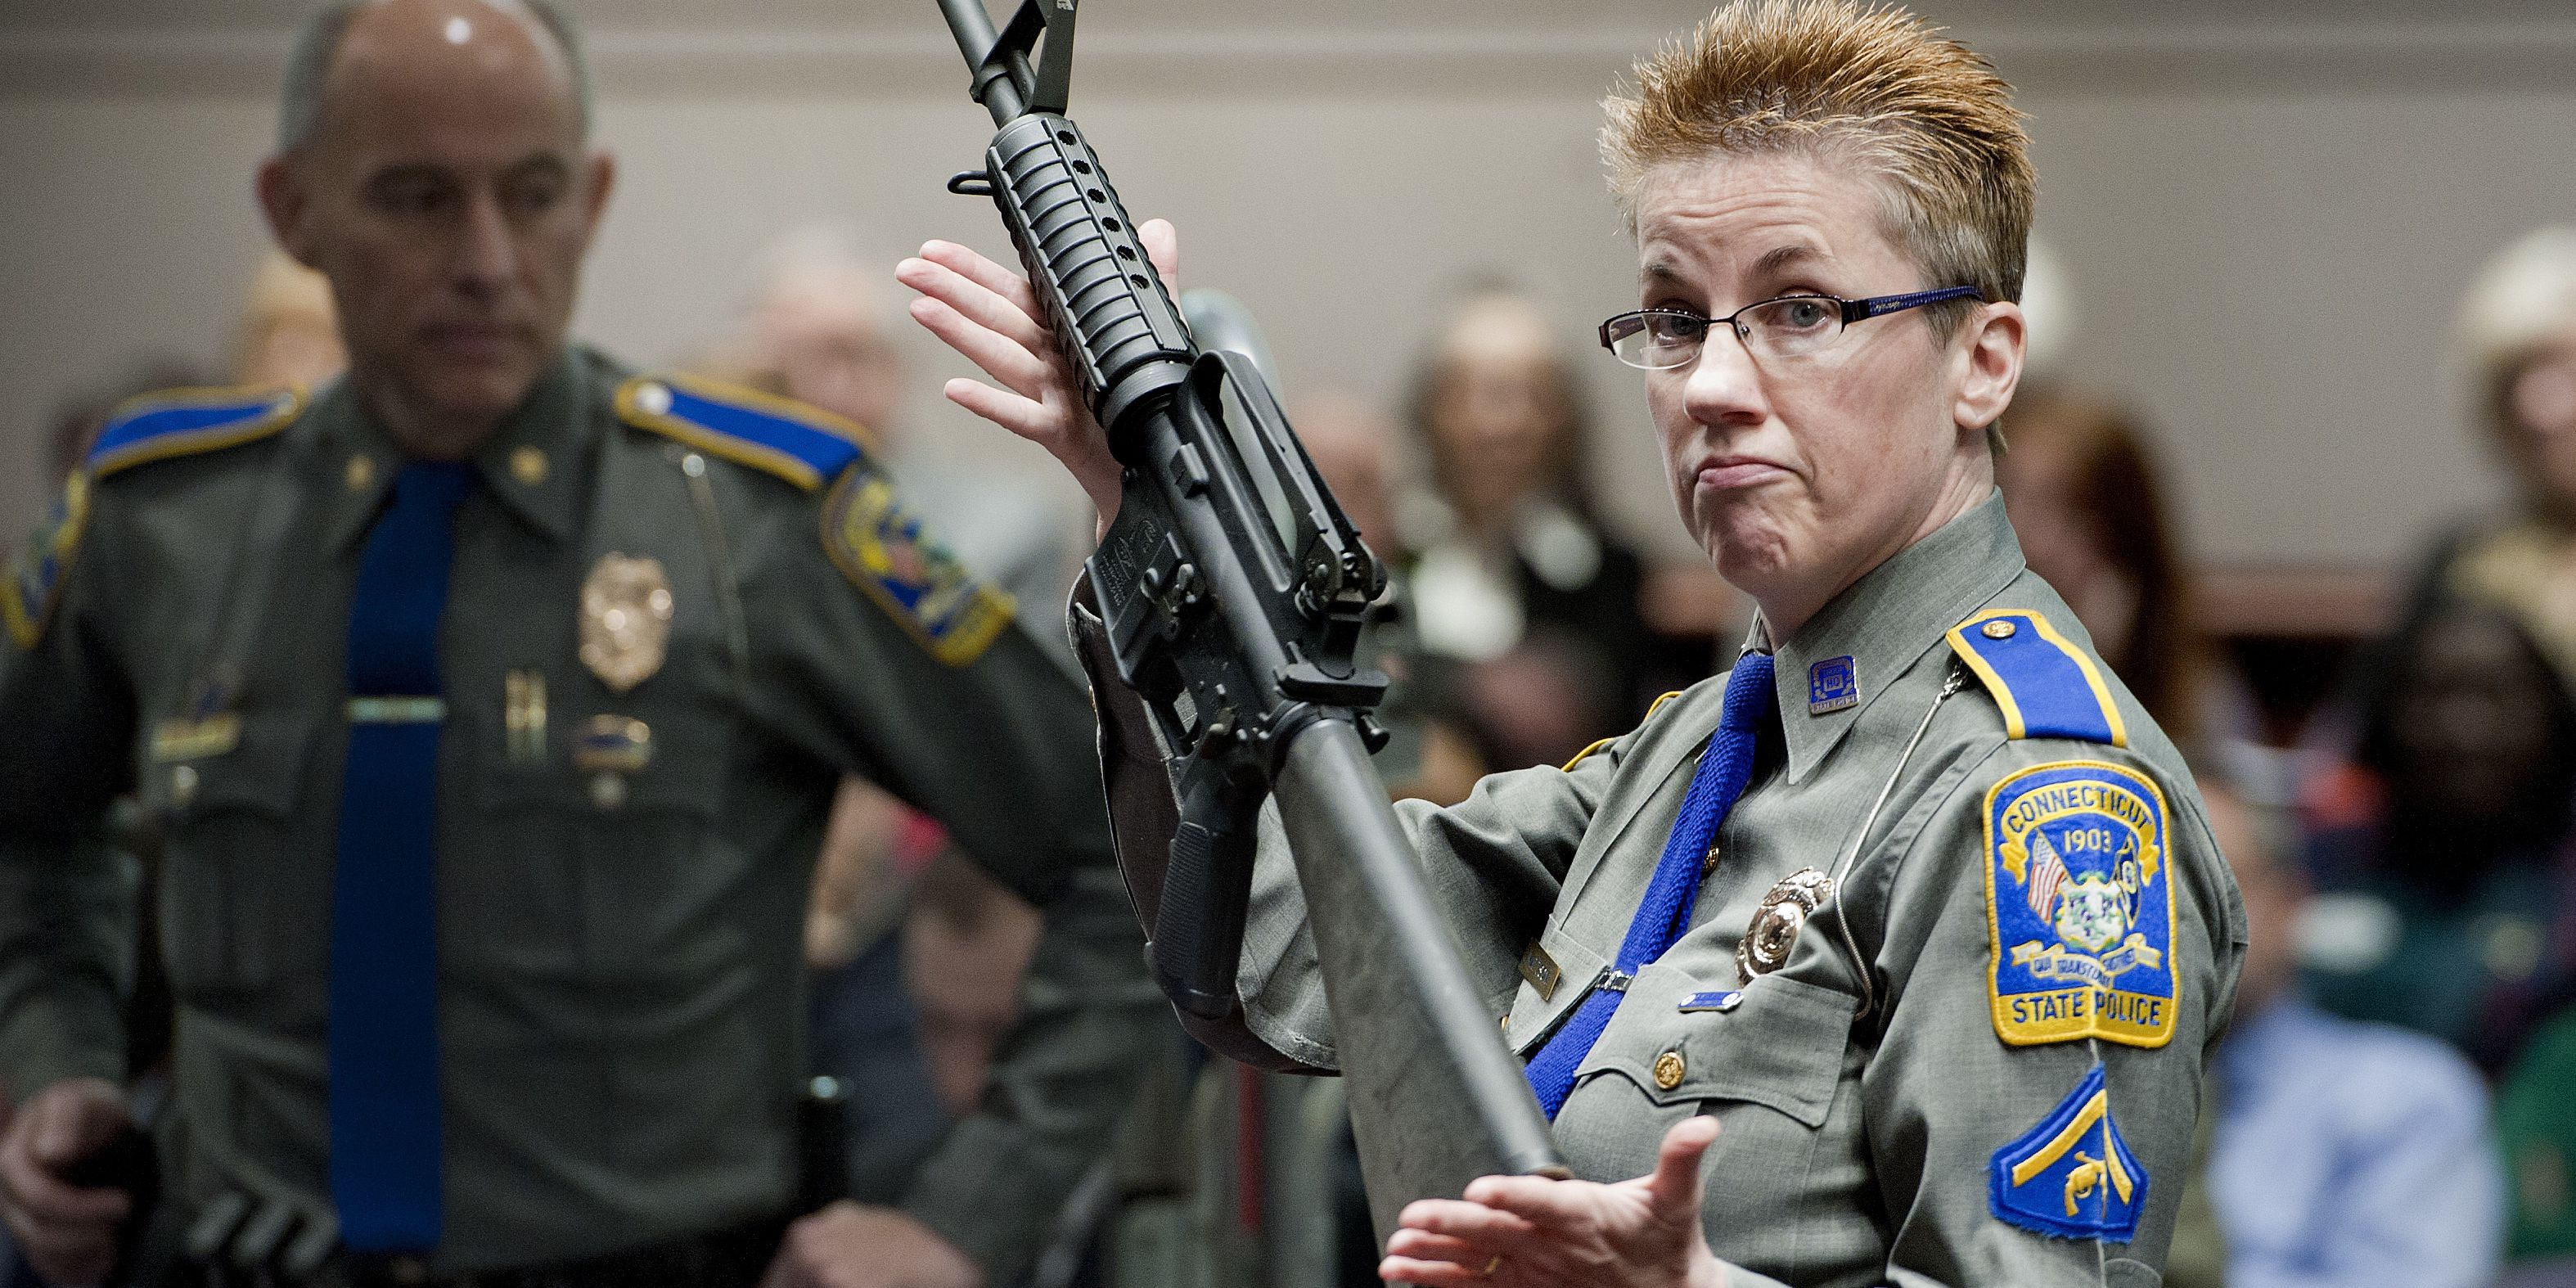 Gun maker Remington can be sued over Newtown shooting, court rules